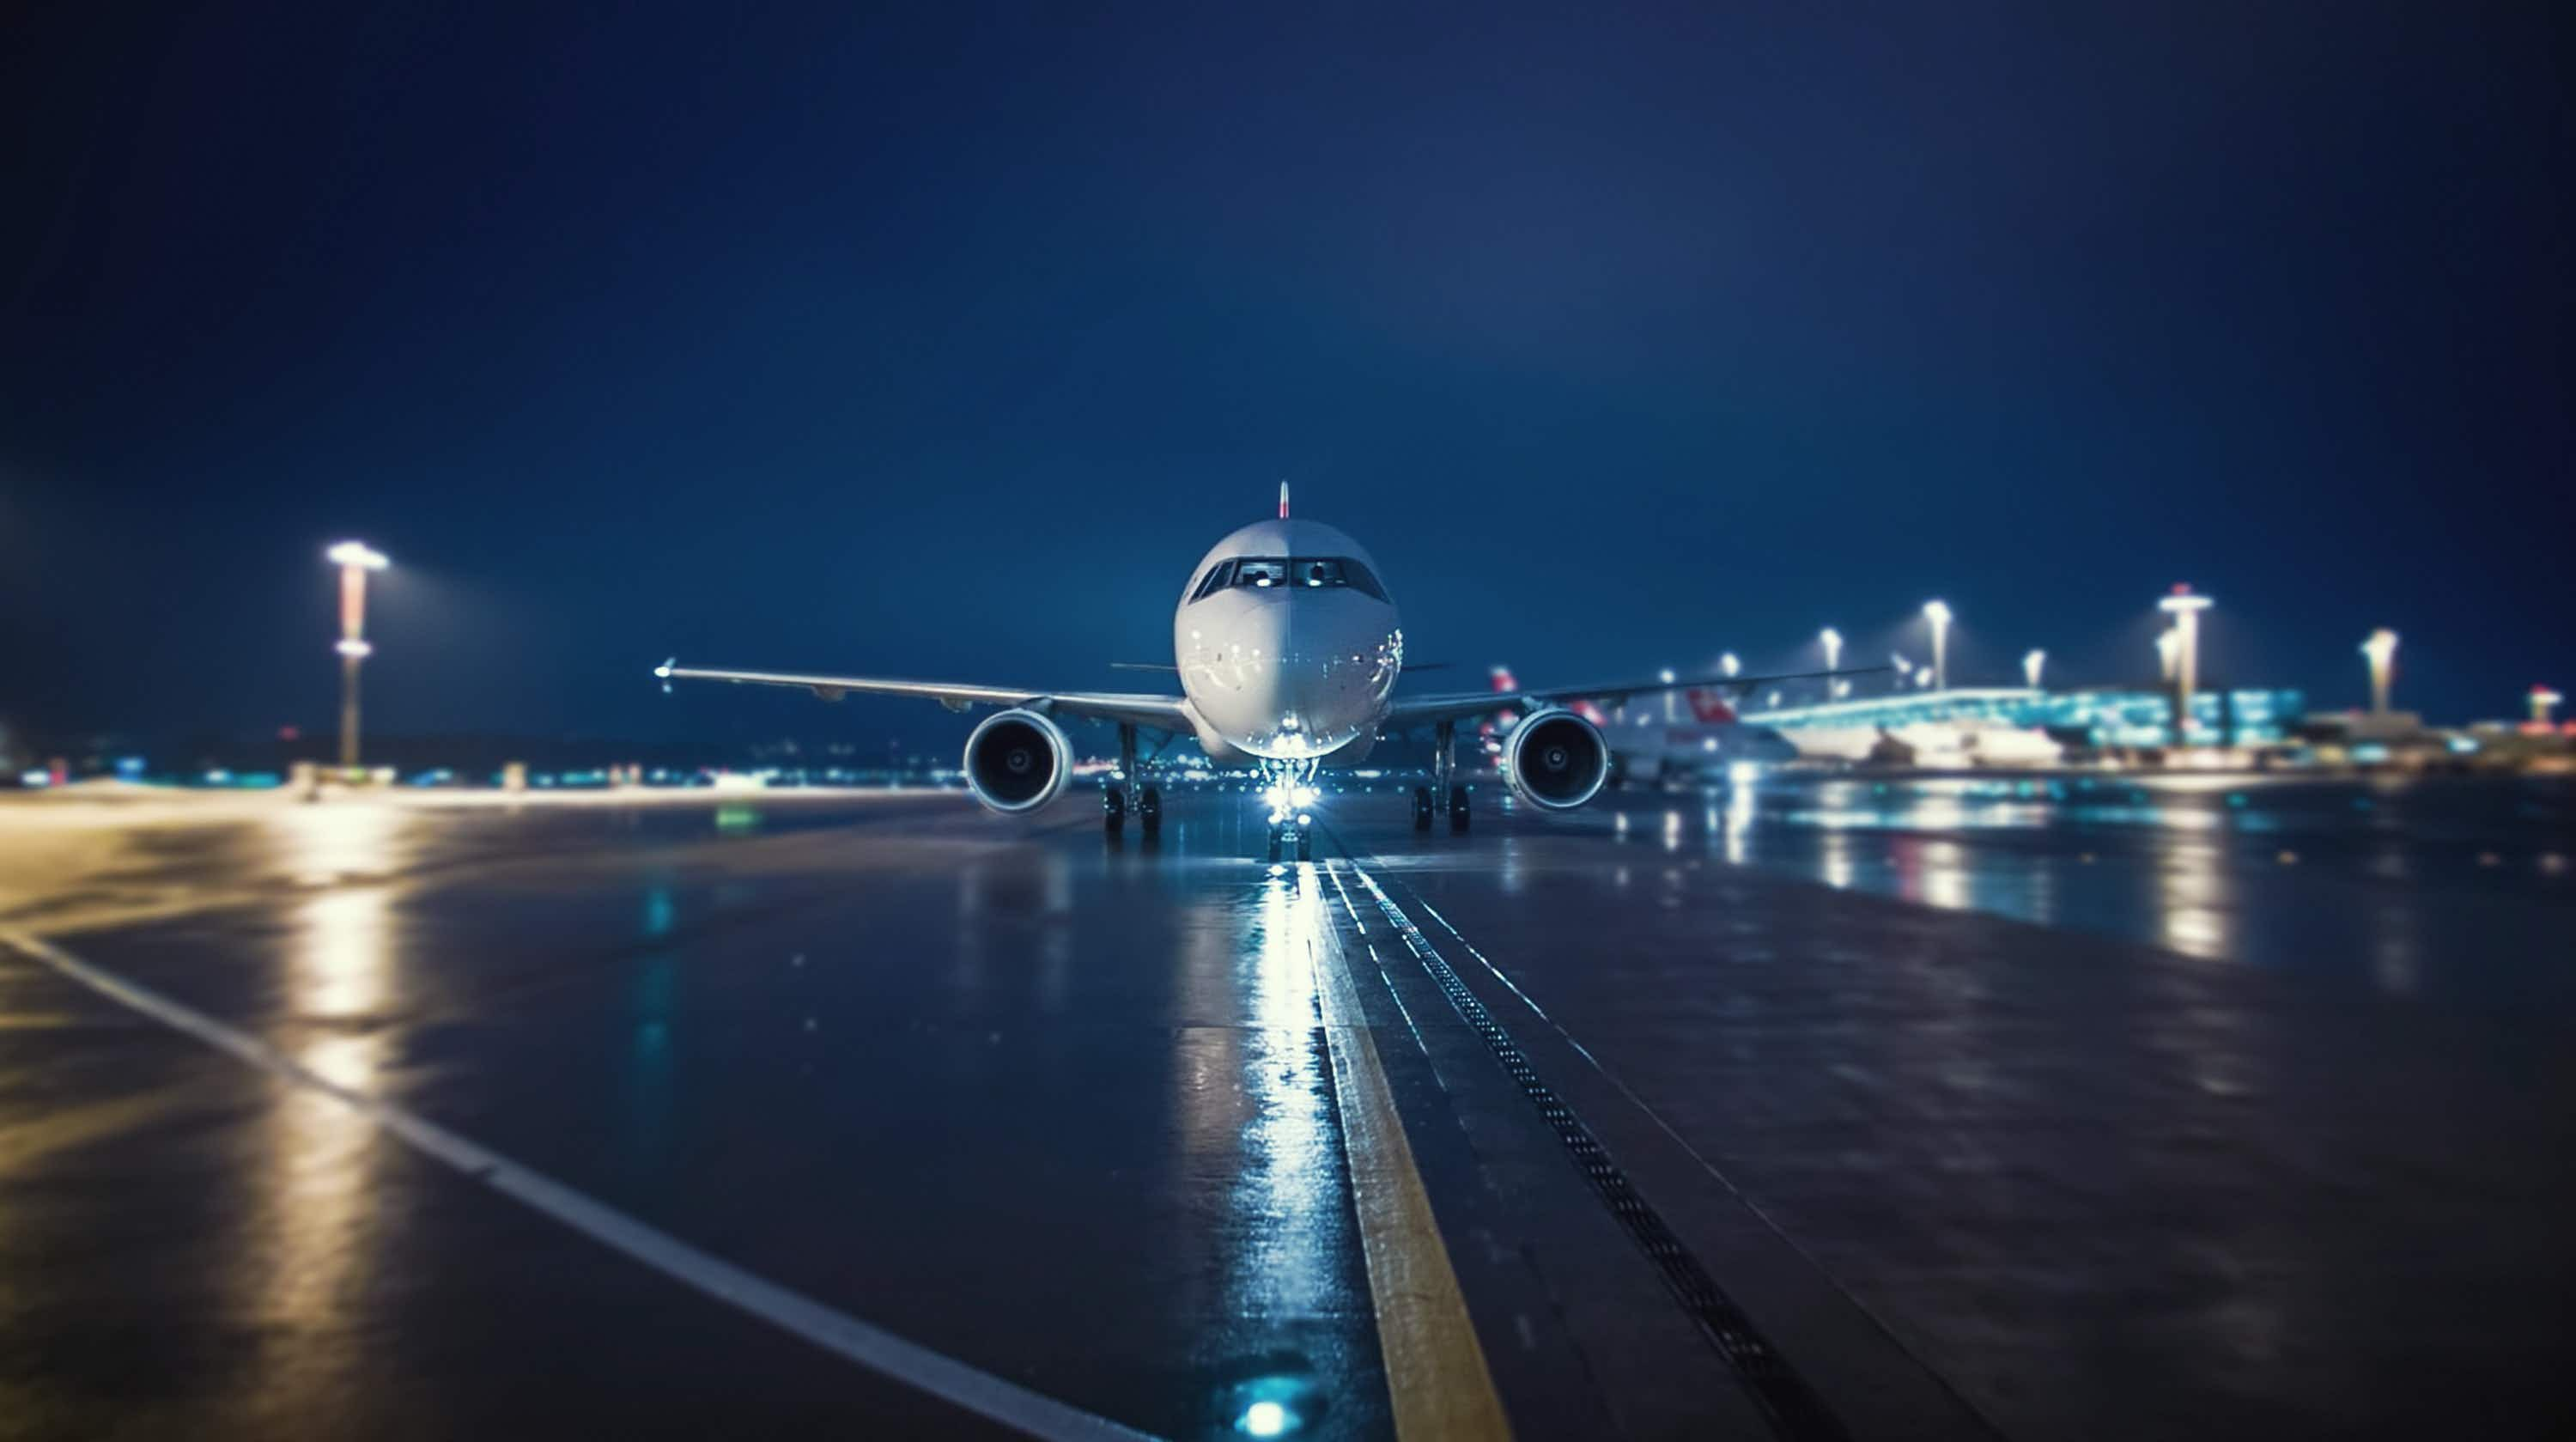 Plane Insider: why do some airplanes take so long to taxi?